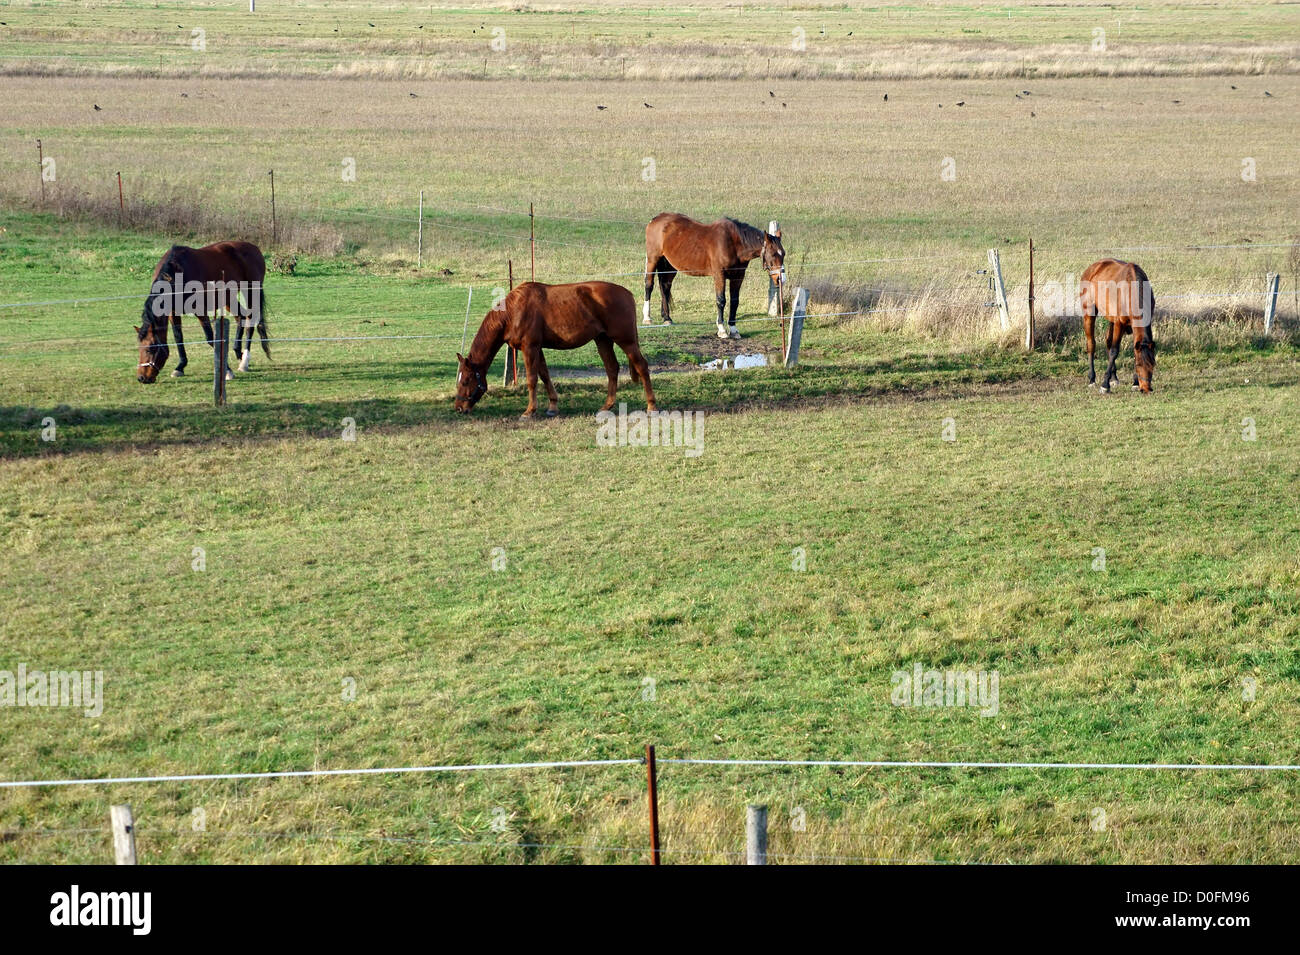 Horses on a pasture - Stock Image